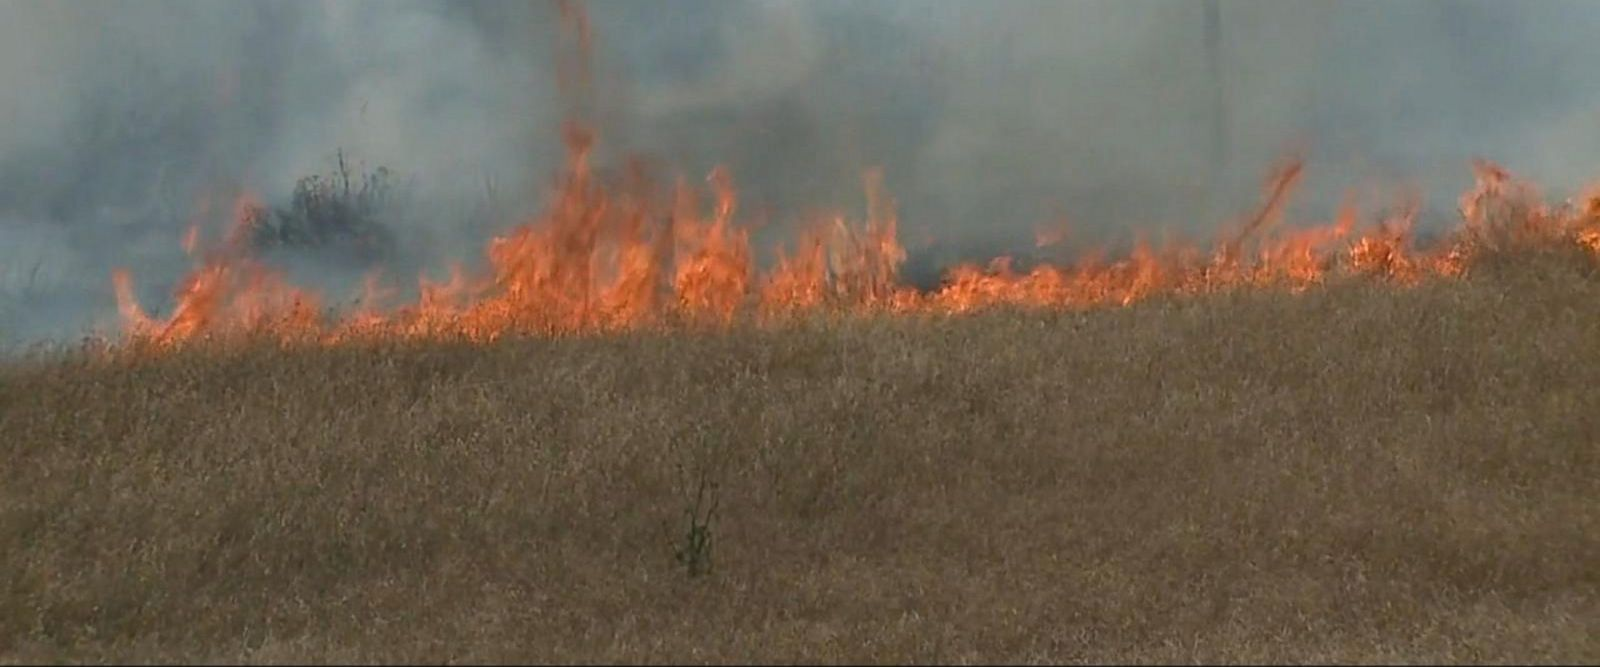 VIDEO: San Diego wildfire under investigation as possible arson